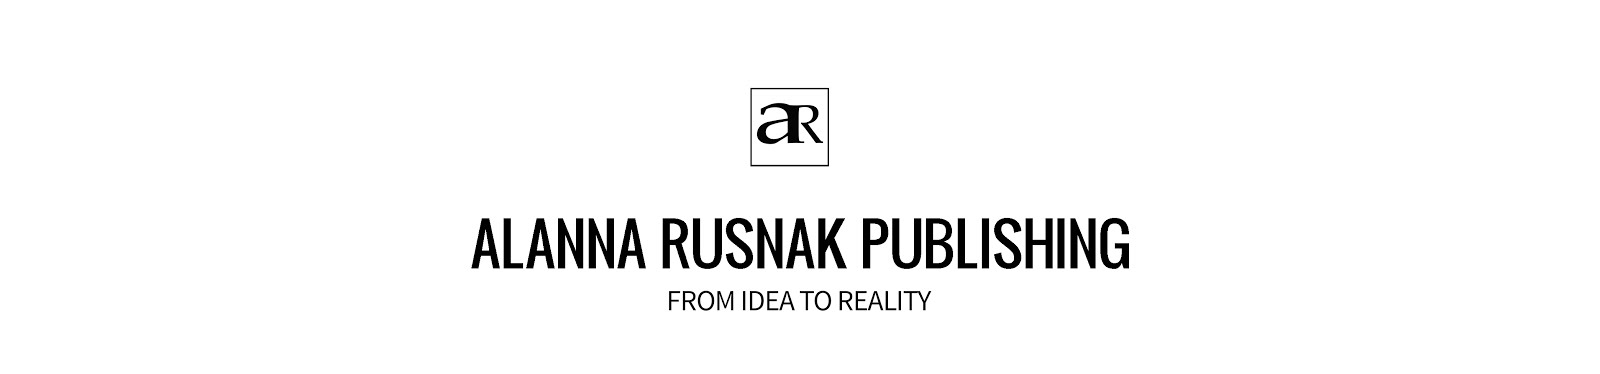 ALANNA RUSNAK PUBLISHING